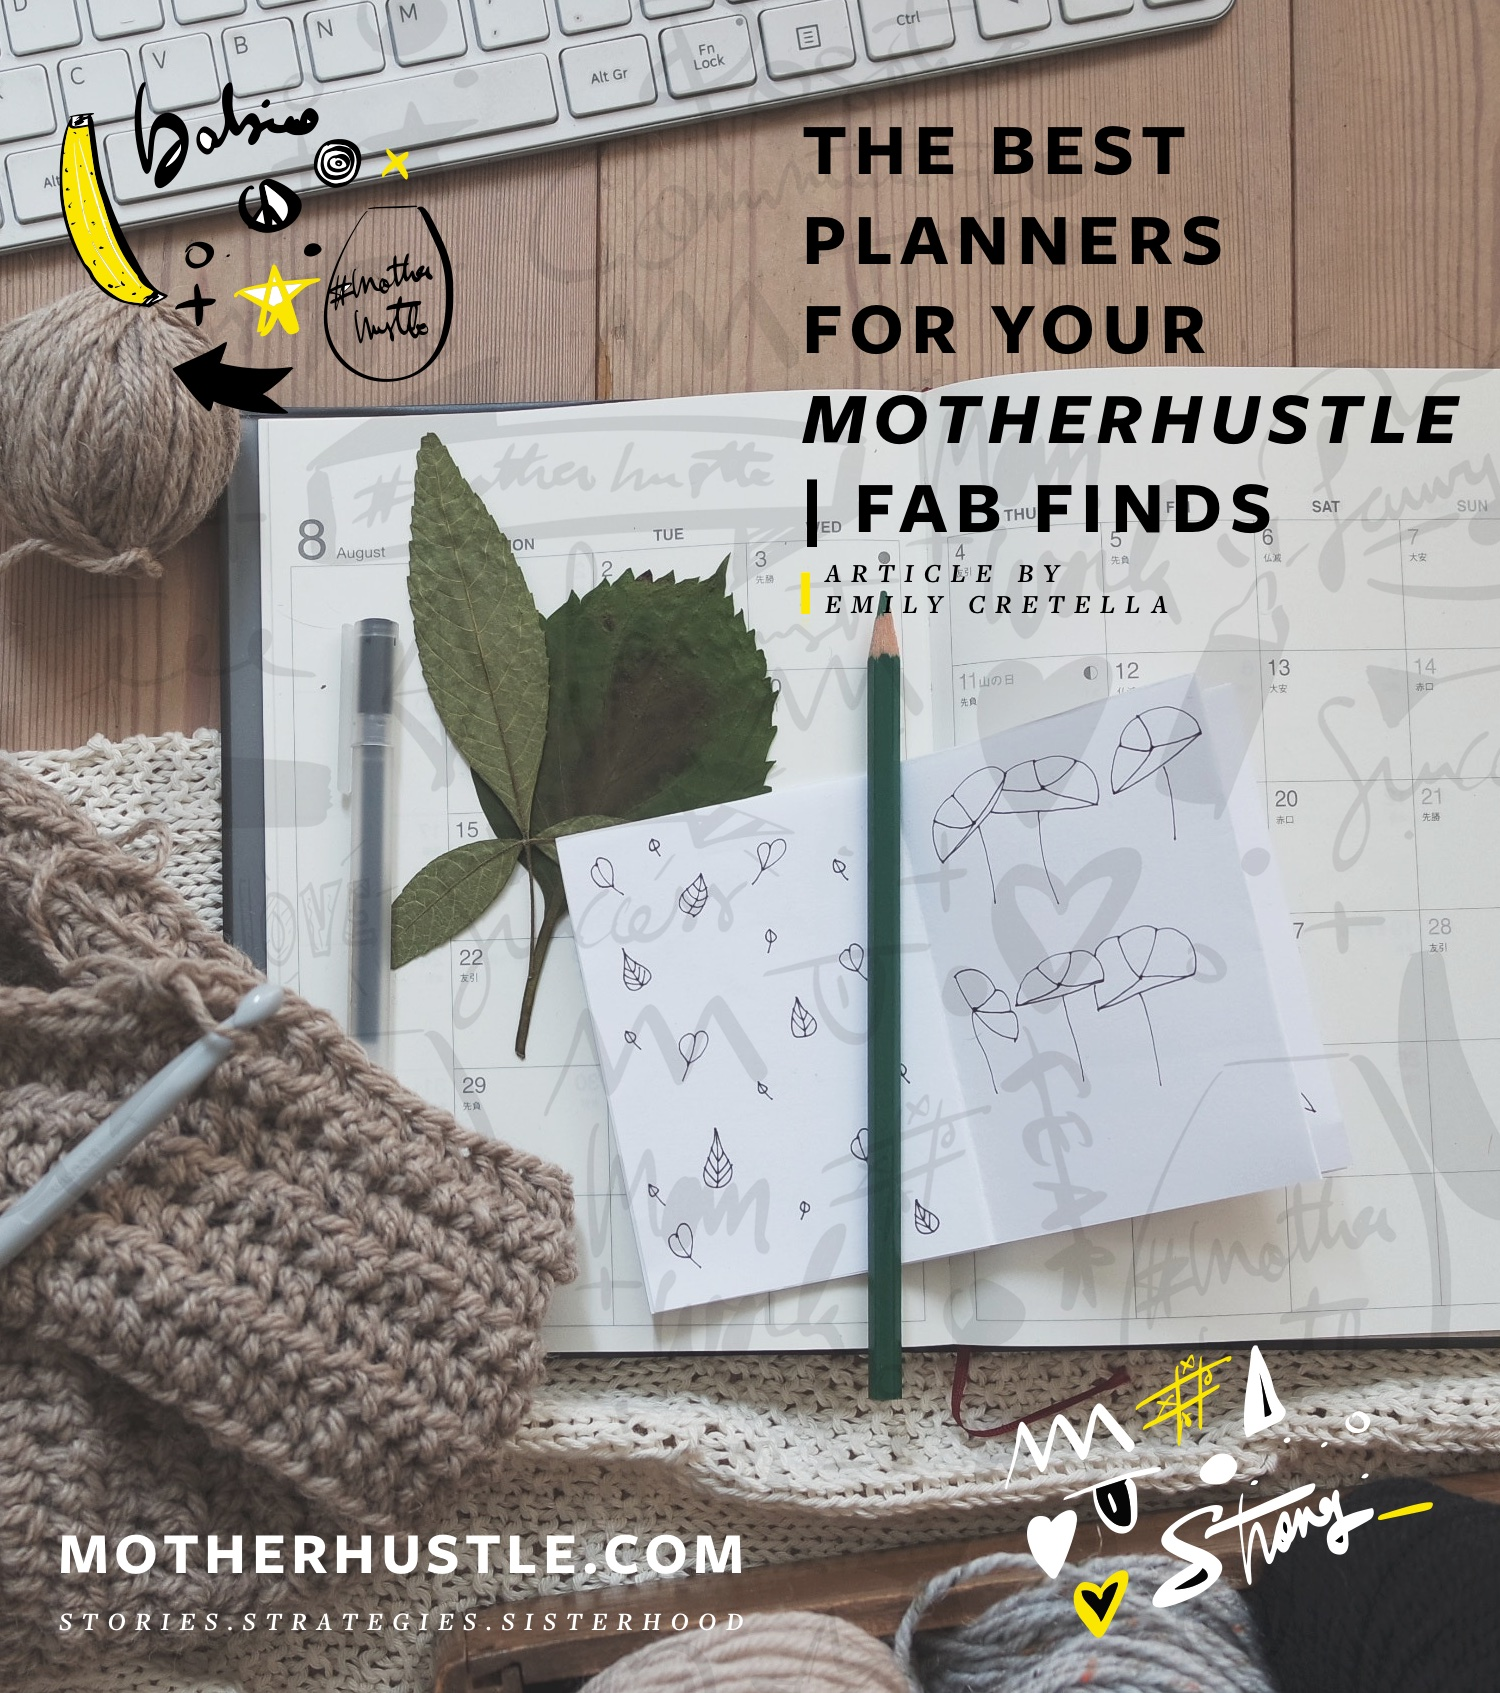 The Best Planners for Your MotherHustle - Fab Finds - by Emily Cretella